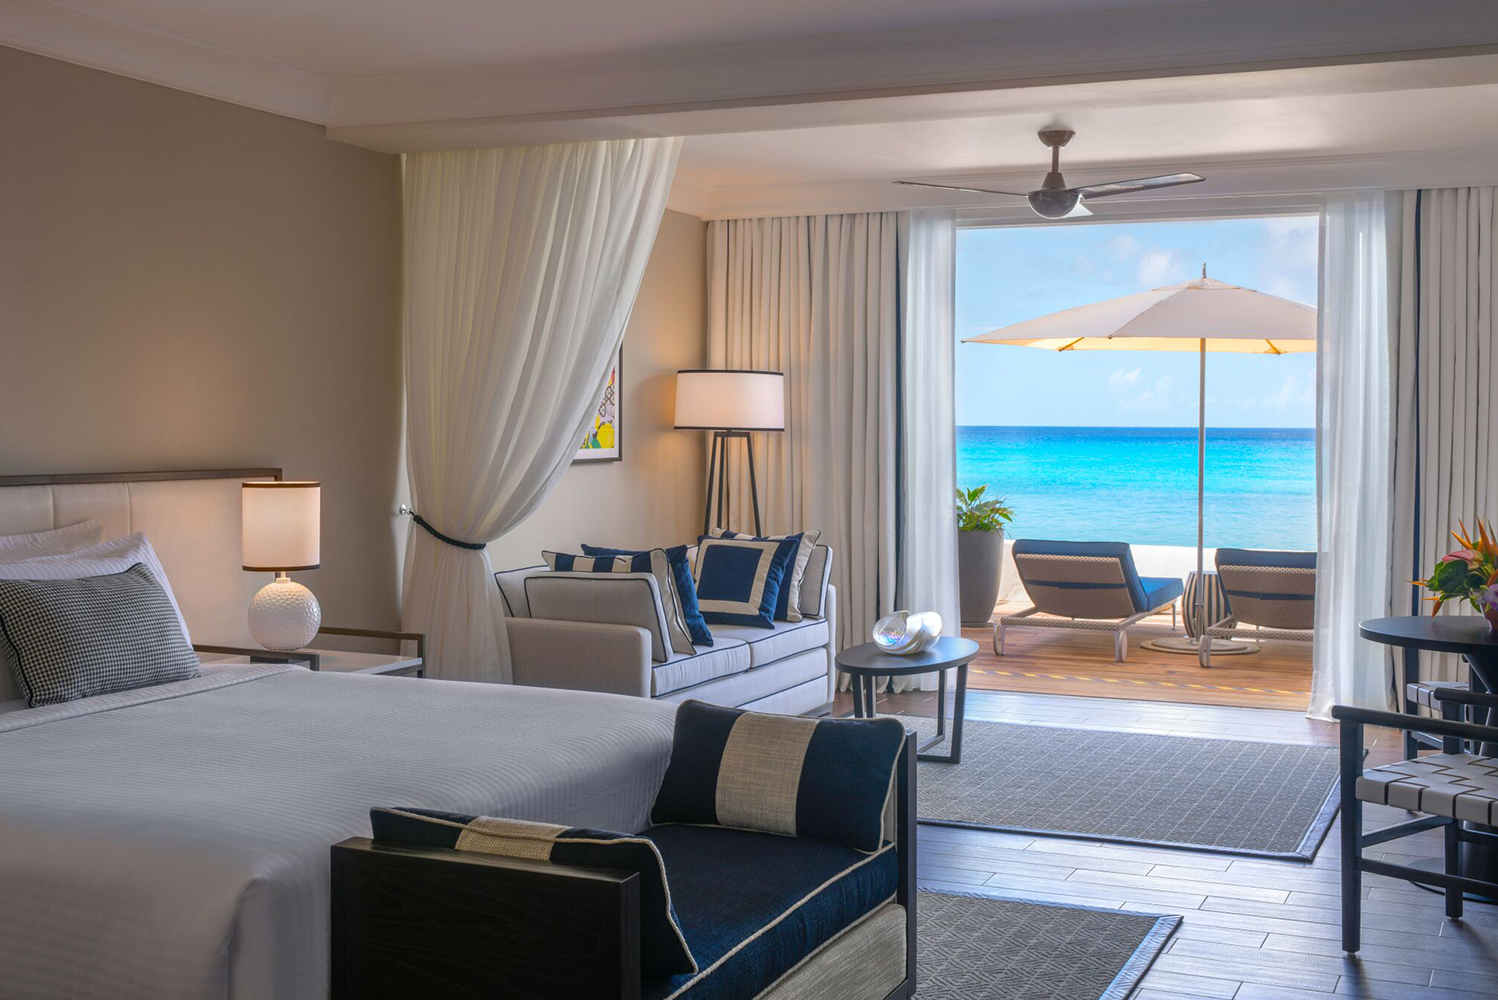 Fairmont Royal Pavilion, Barbados completed a renovation project that saw changes made to the property's hotel lobby, and 72 guestrooms and suites.